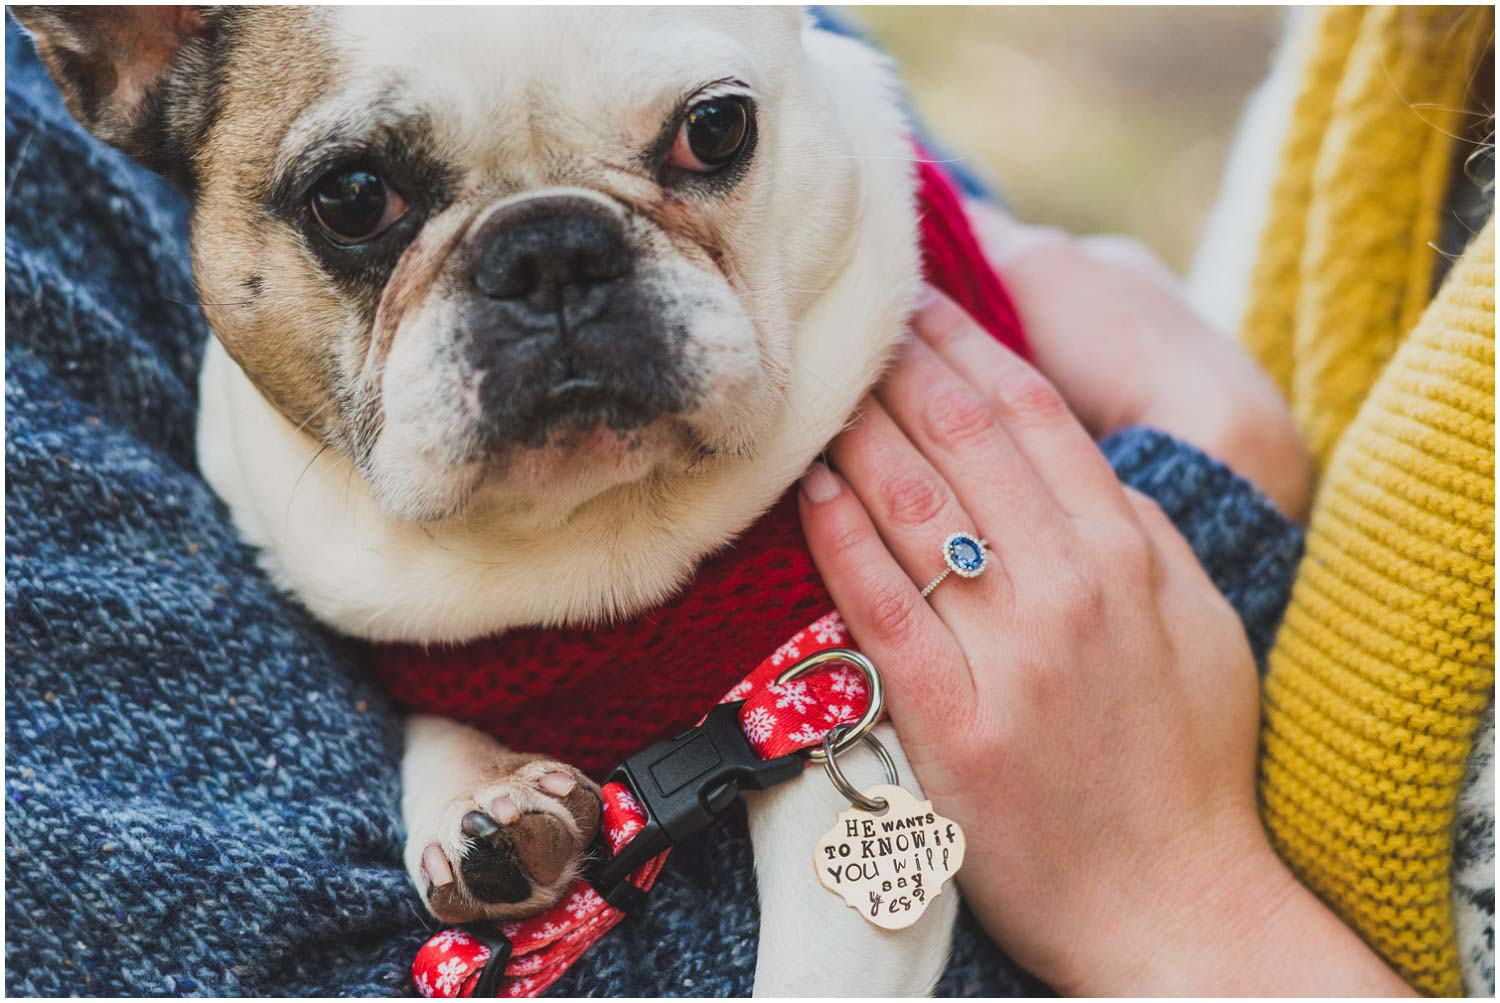 he wants to know if you'll say yes tag on dog collar for proposal with blue sapphire engagement ring